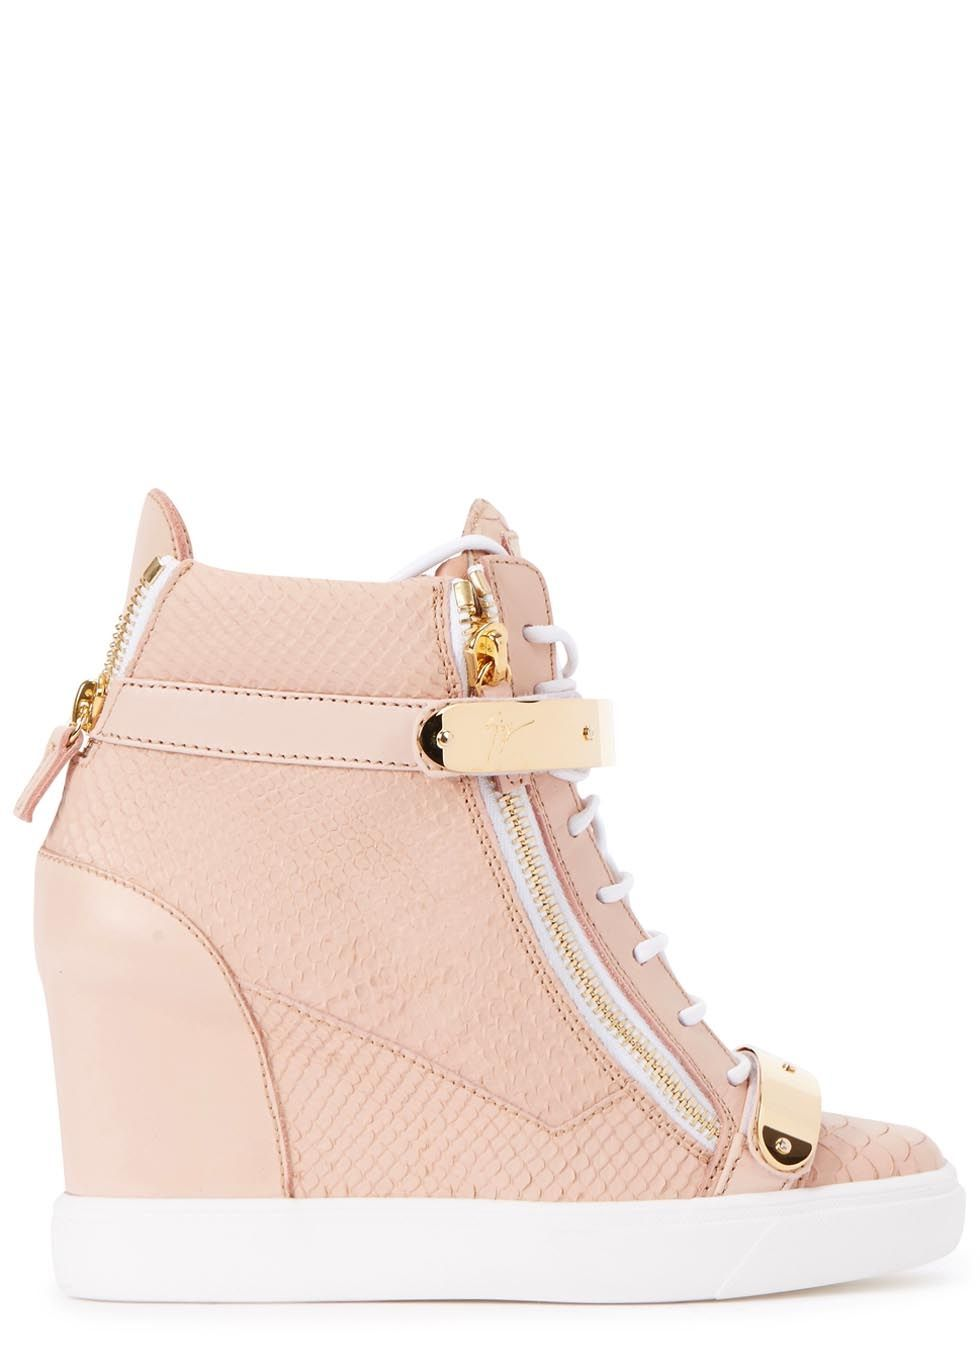 5f8adb6a4cb5f Giuseppe Zanotti rose leather hi-top trainers Concealed wedge heel measures  approximately 3.5 inches  90mm Snake effect